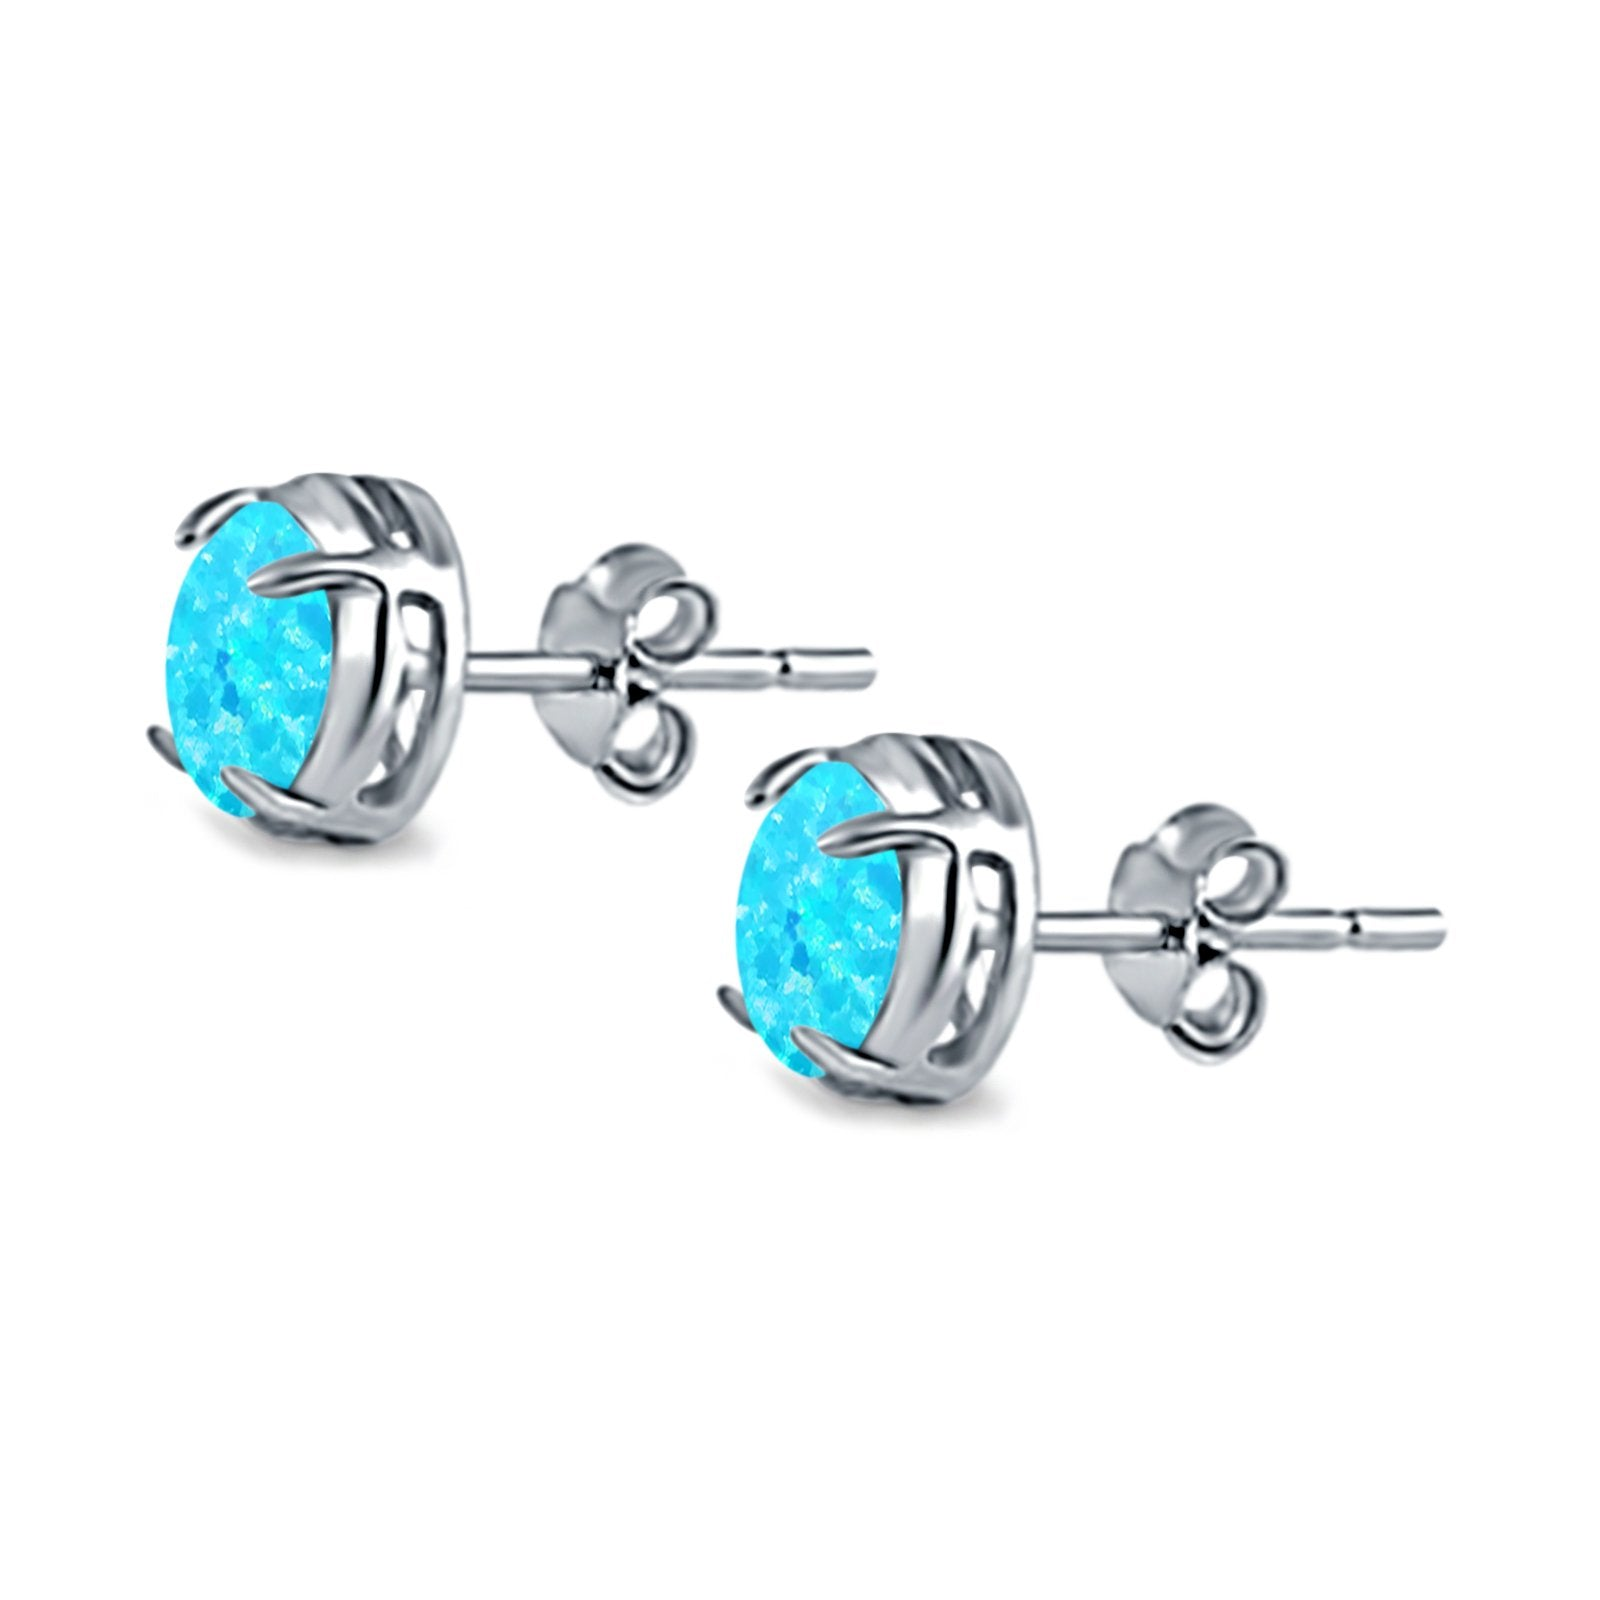 Solitaire Stud Earring Round Lab Created Light Blue Opal 925 Sterling Silver (6.3mm)